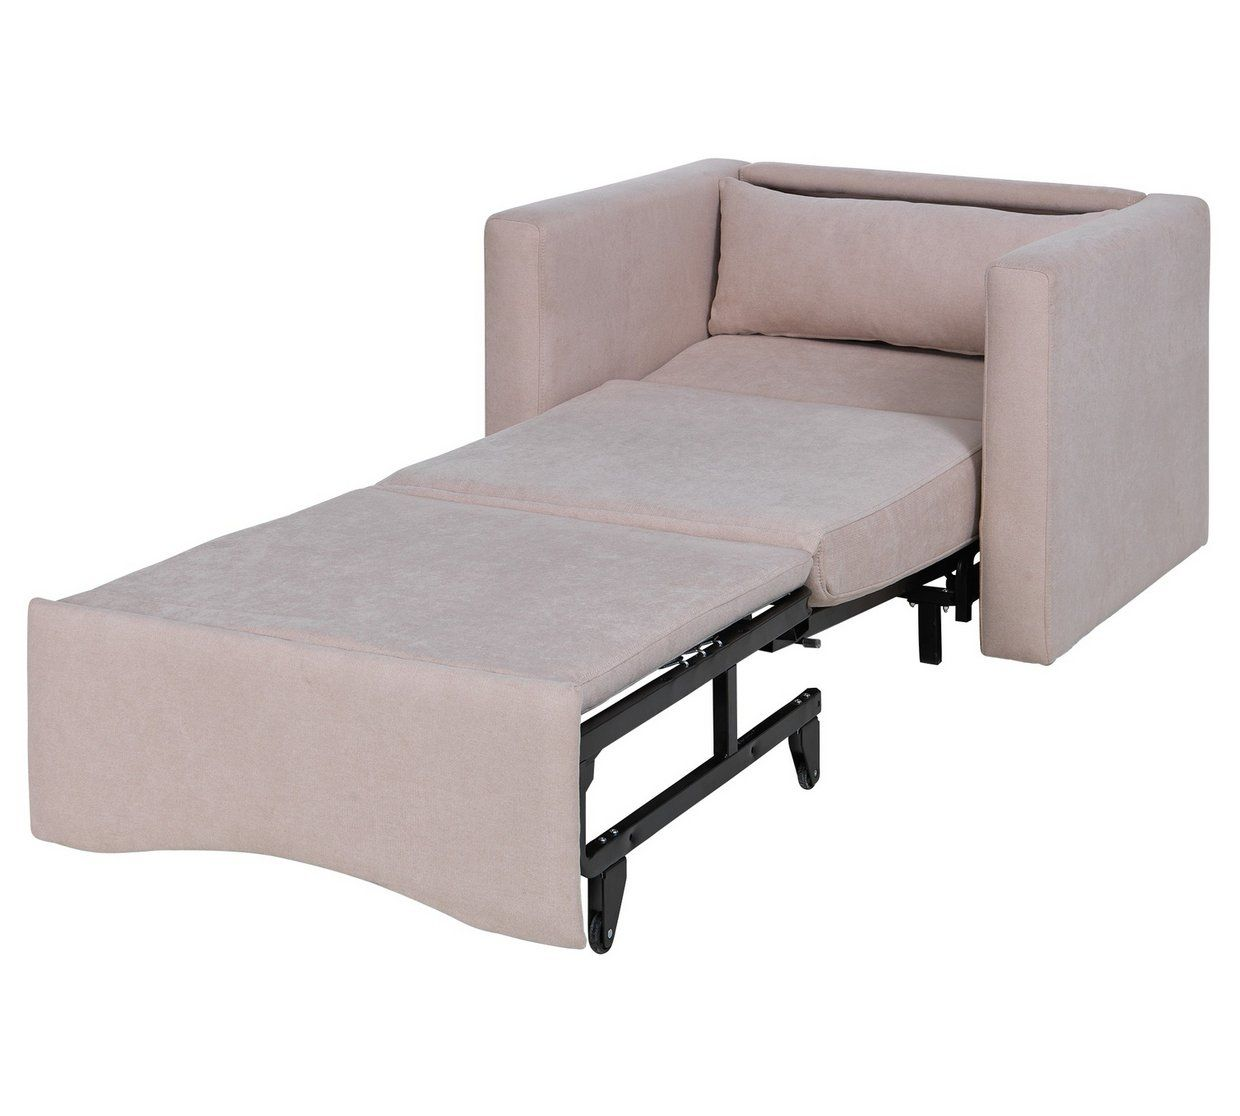 fold out chair bed argos dolls high toys r us buy home reagan fabric chairbed natural sofa beds chairbeds and futons